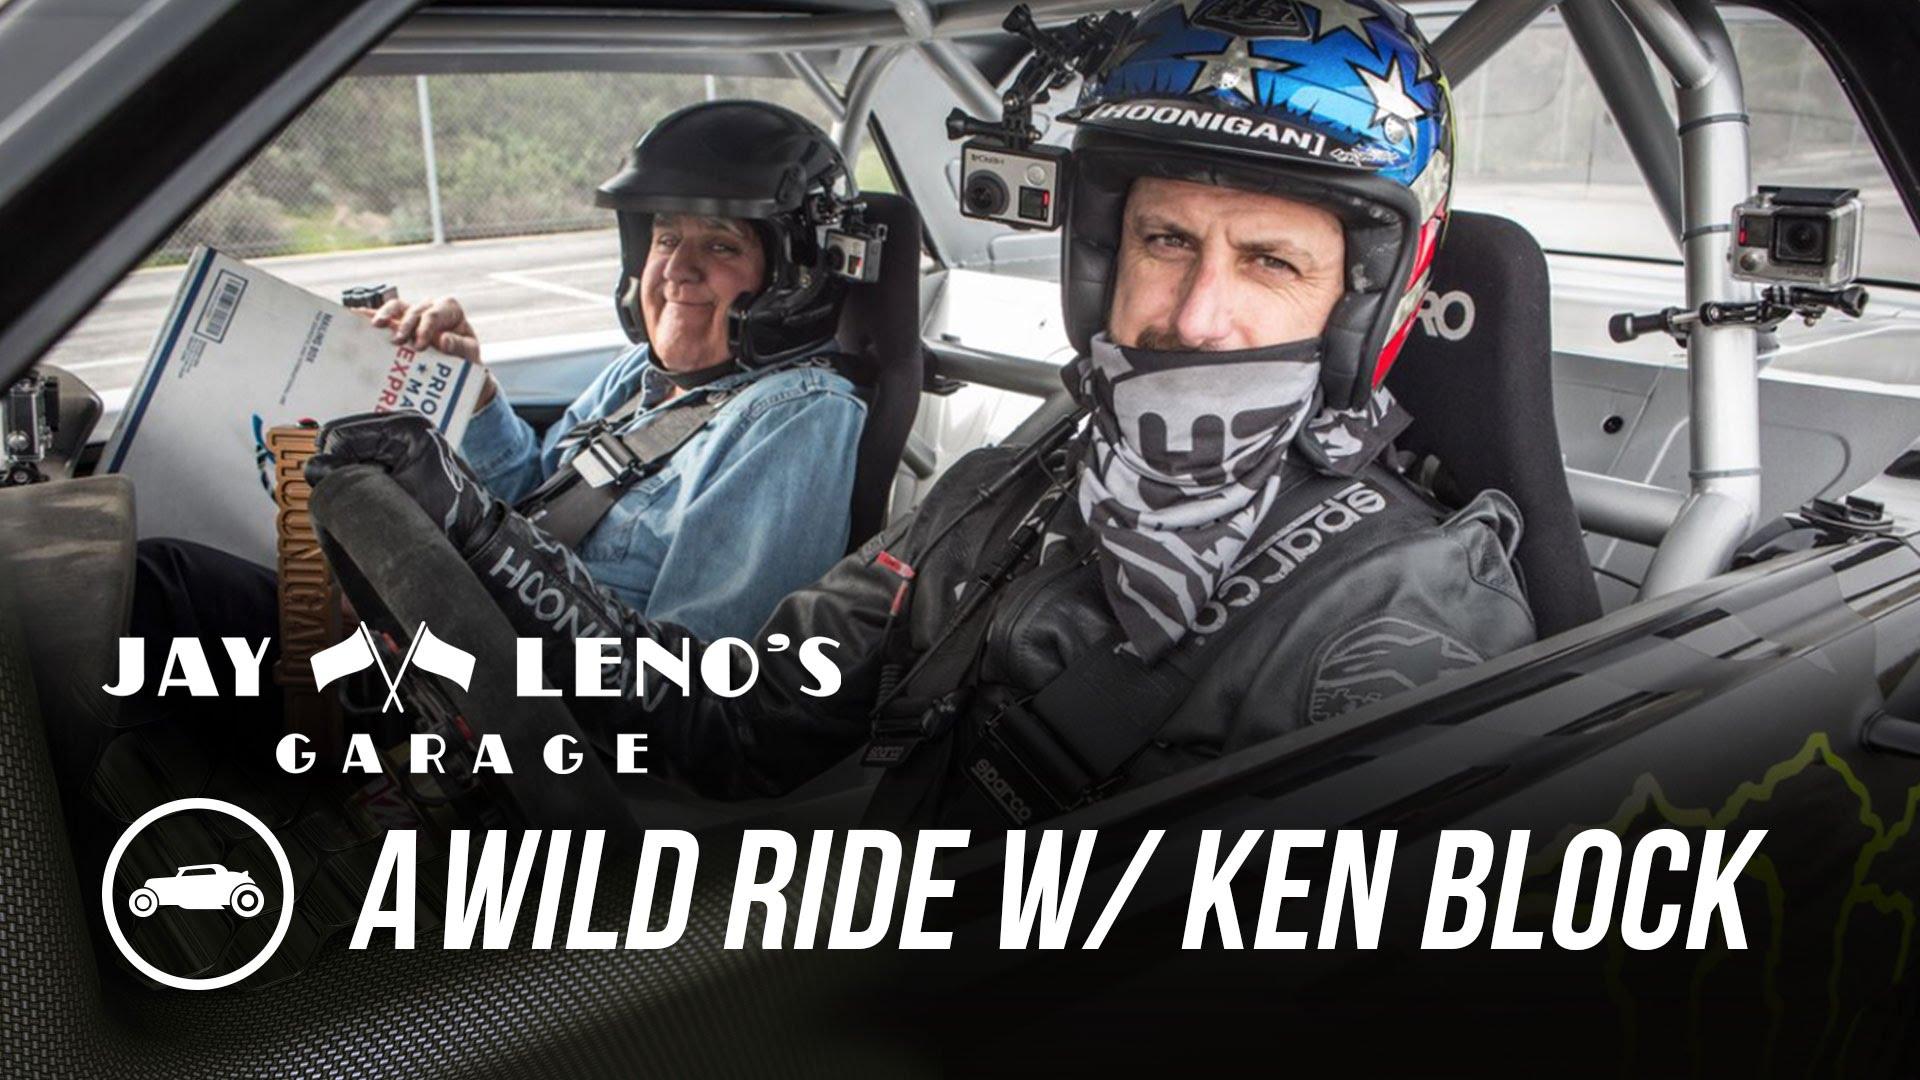 Video: Jay Leno Rides in Ken Block's Hoonicorn Mustang